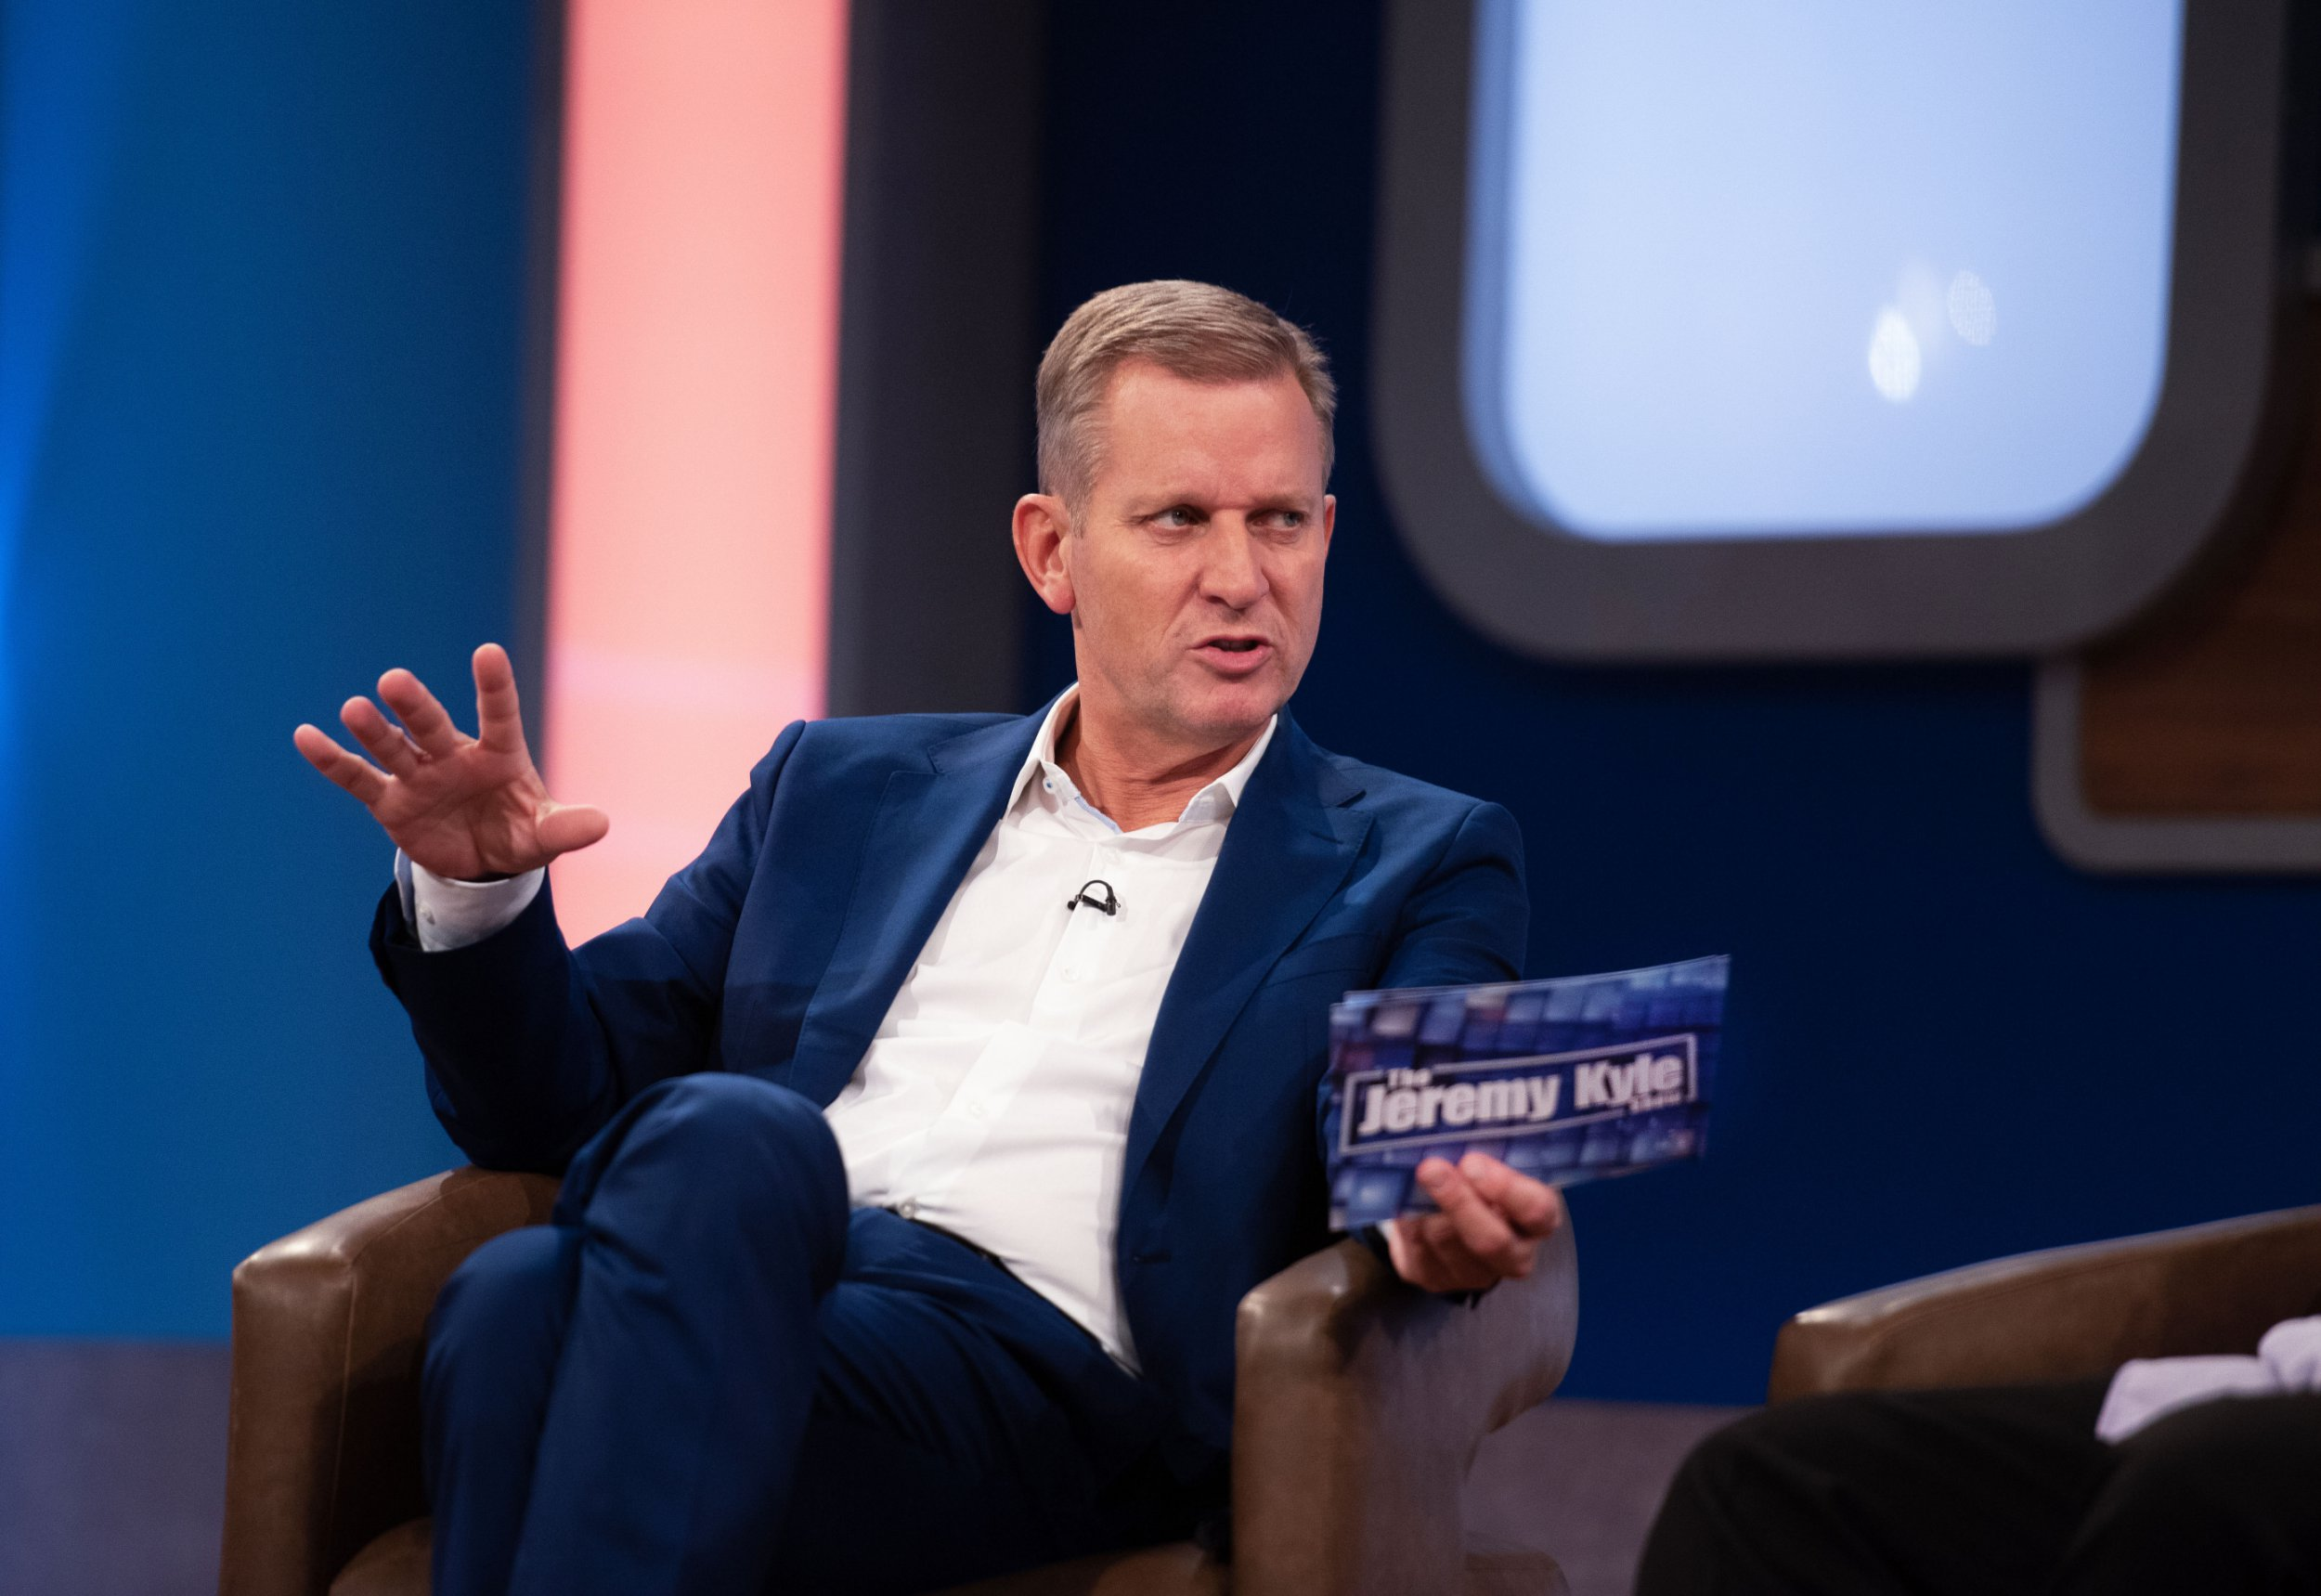 Jeremy Kyle on the set of The Jeremy Kyle Show